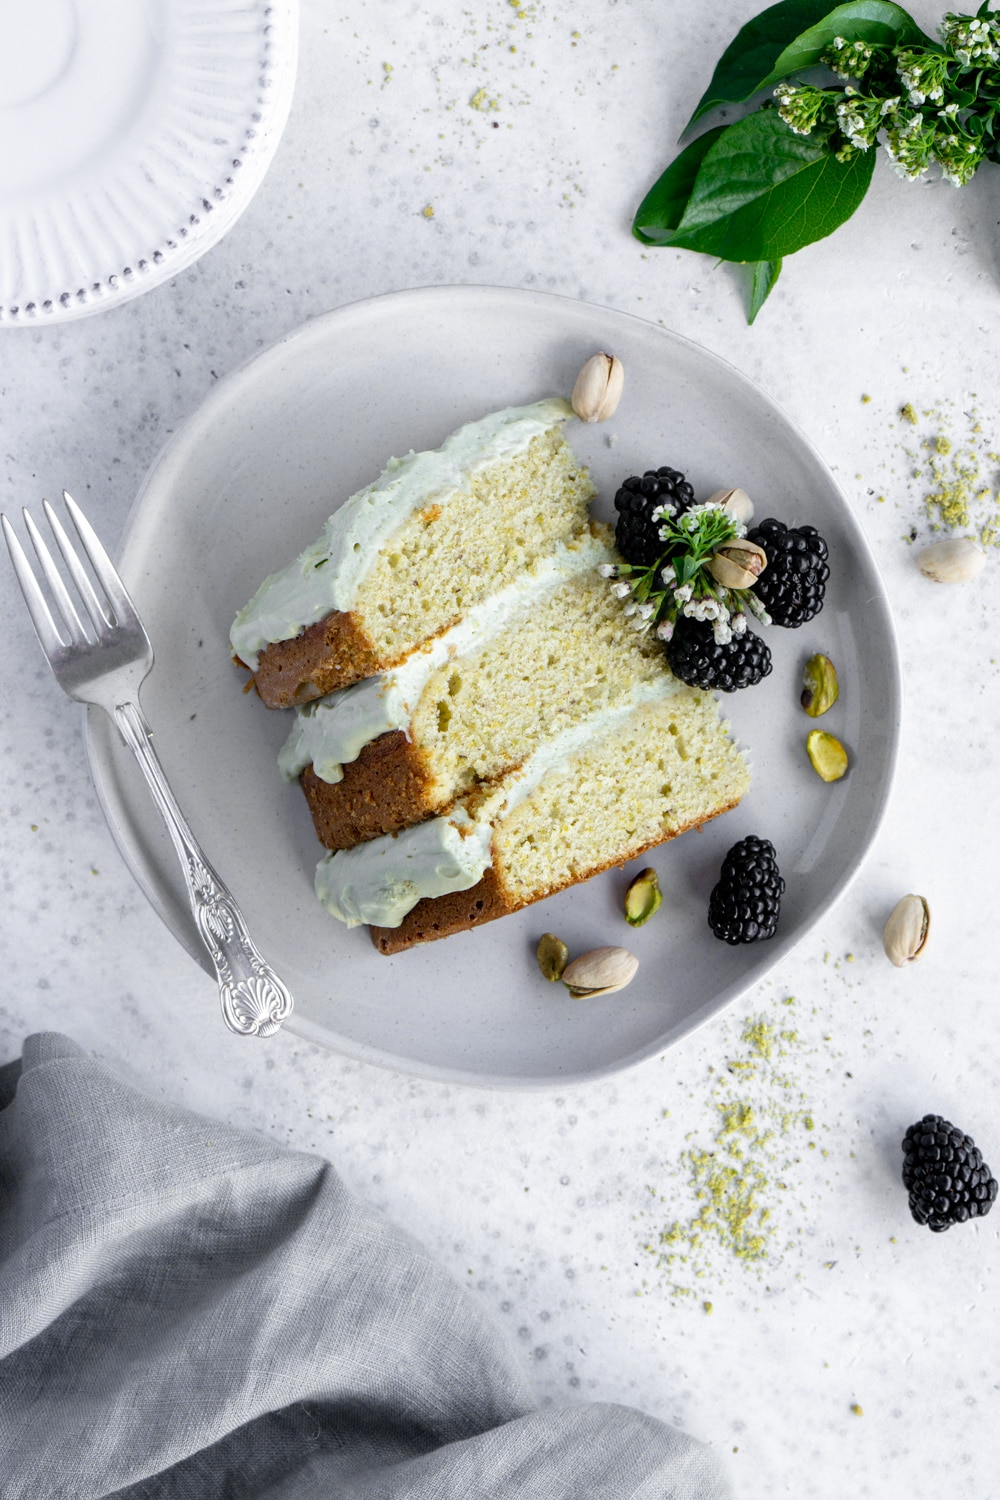 slice of pistachio cake on a plate with blackberries around it